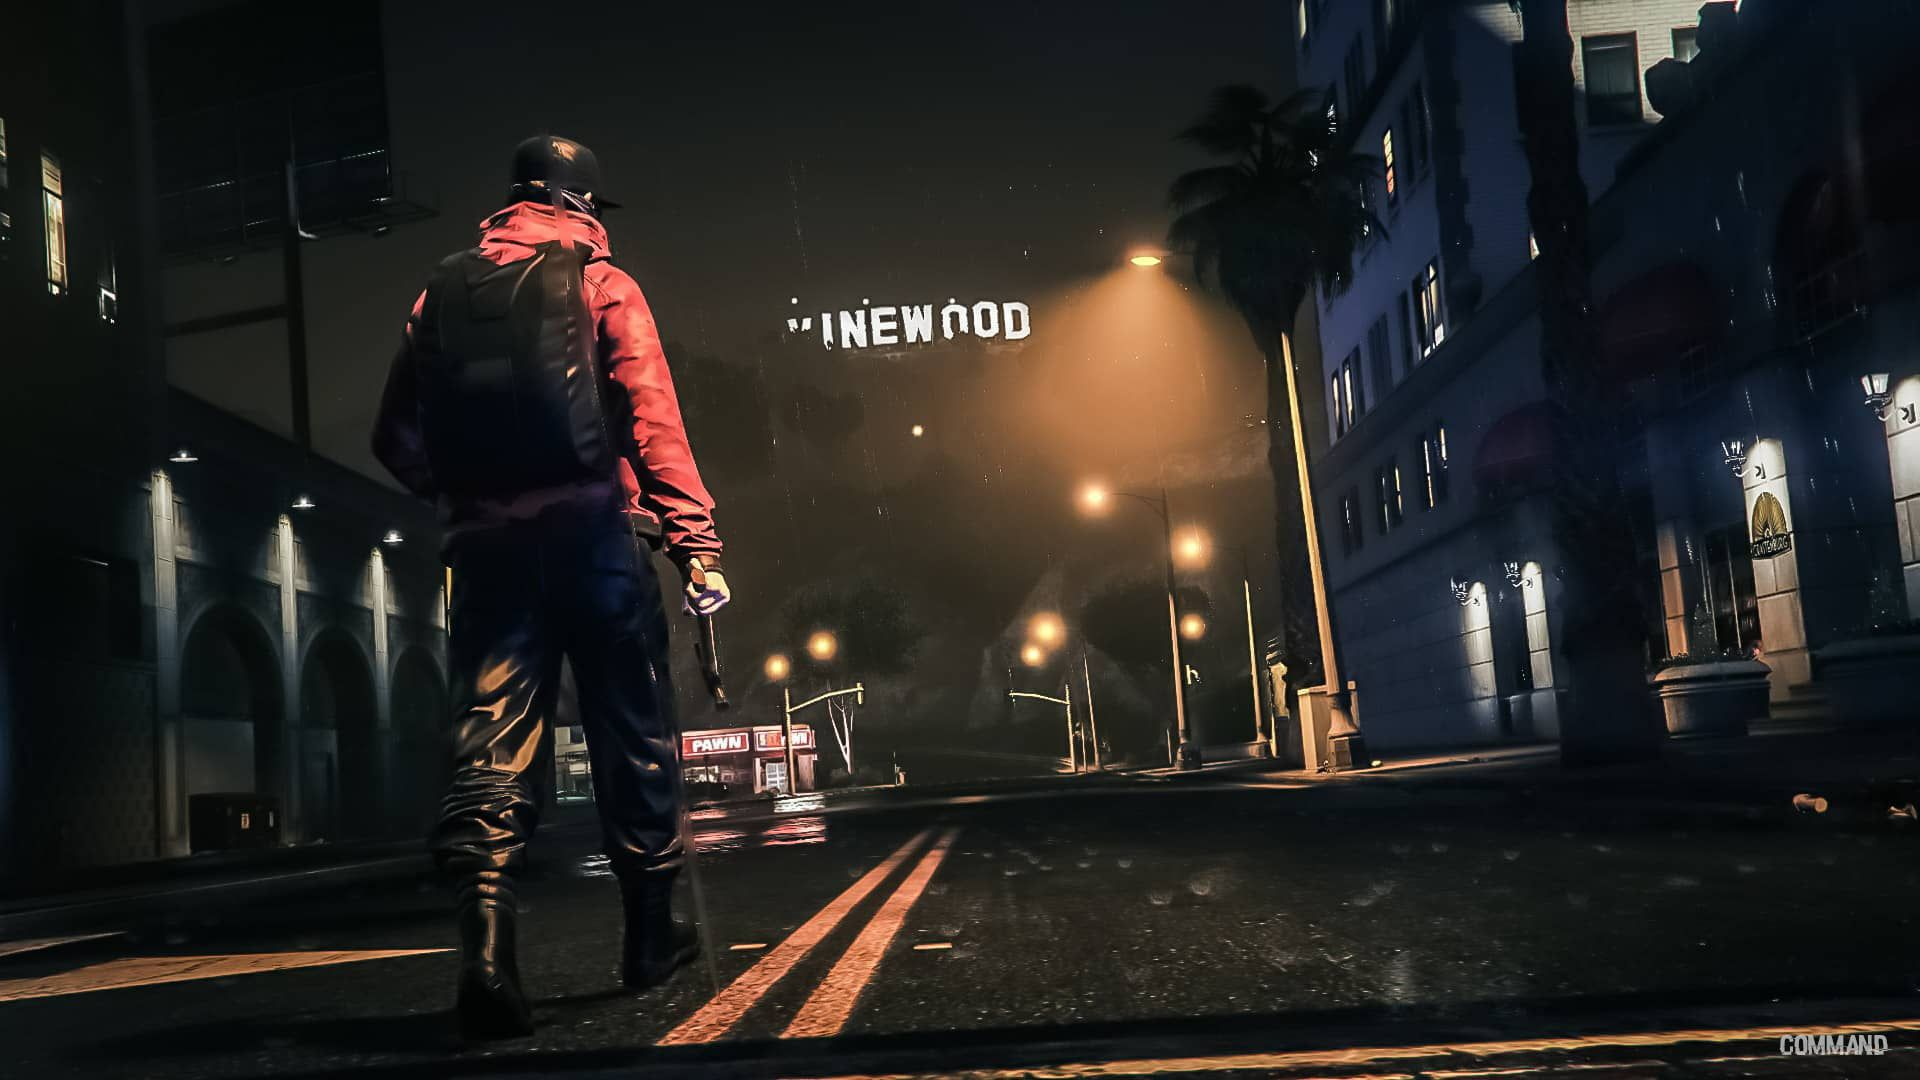 Men S Red Jacket And Black Backpack Gta5 Grand Theft Auto V Grand Theft Auto Hollywood 1080p Wallpaper Hdwallpaper De Gta Black Backpack Grand Theft Auto